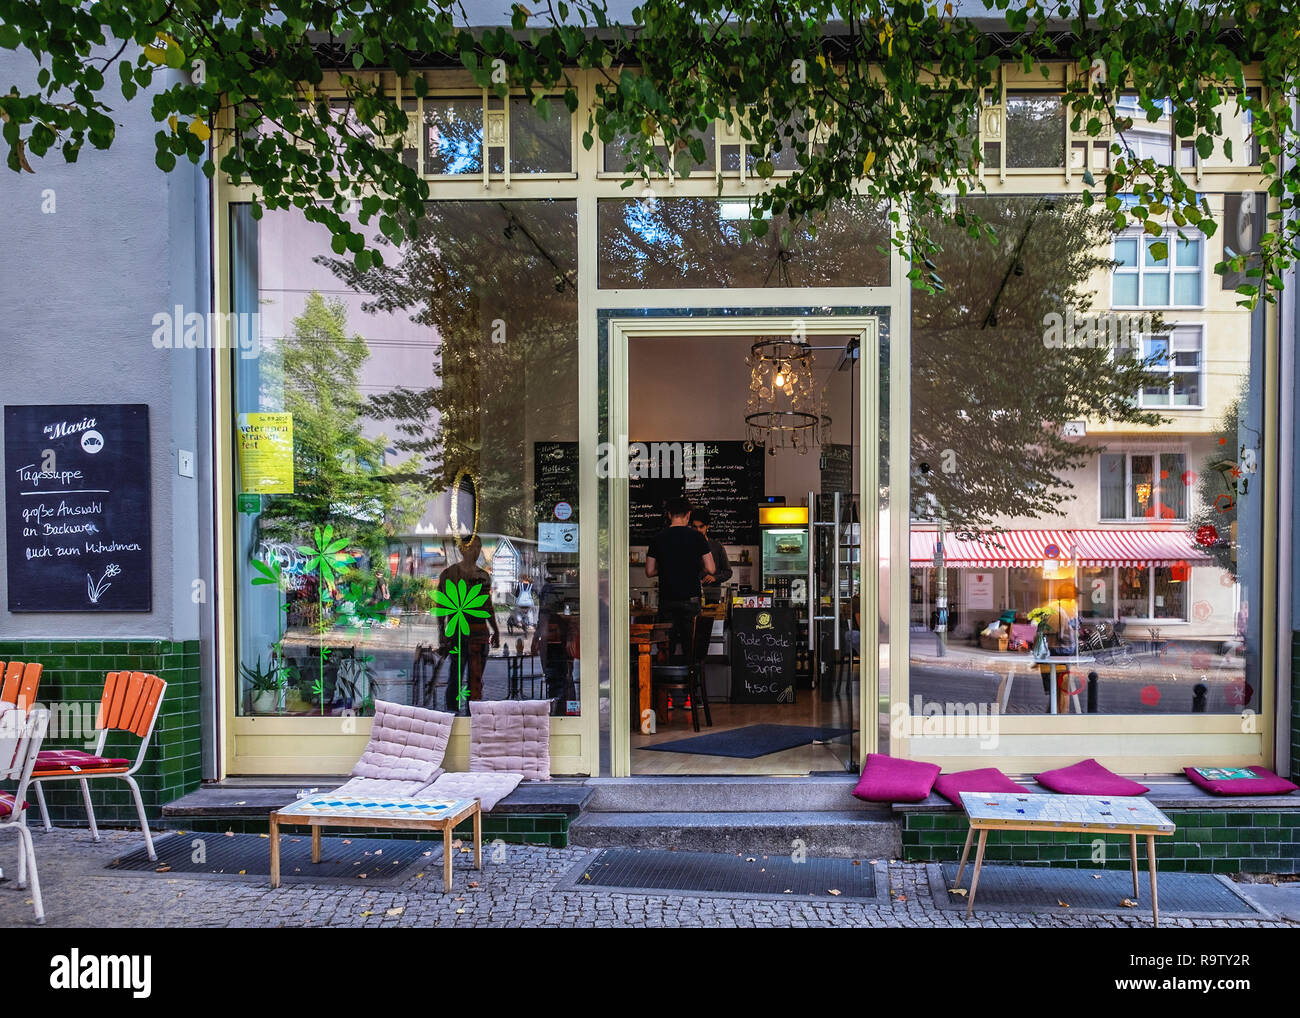 Berlin, Mitte,Bei Maria coffee shop and breakfast venue in Veteran street. Exterior view - Stock Image